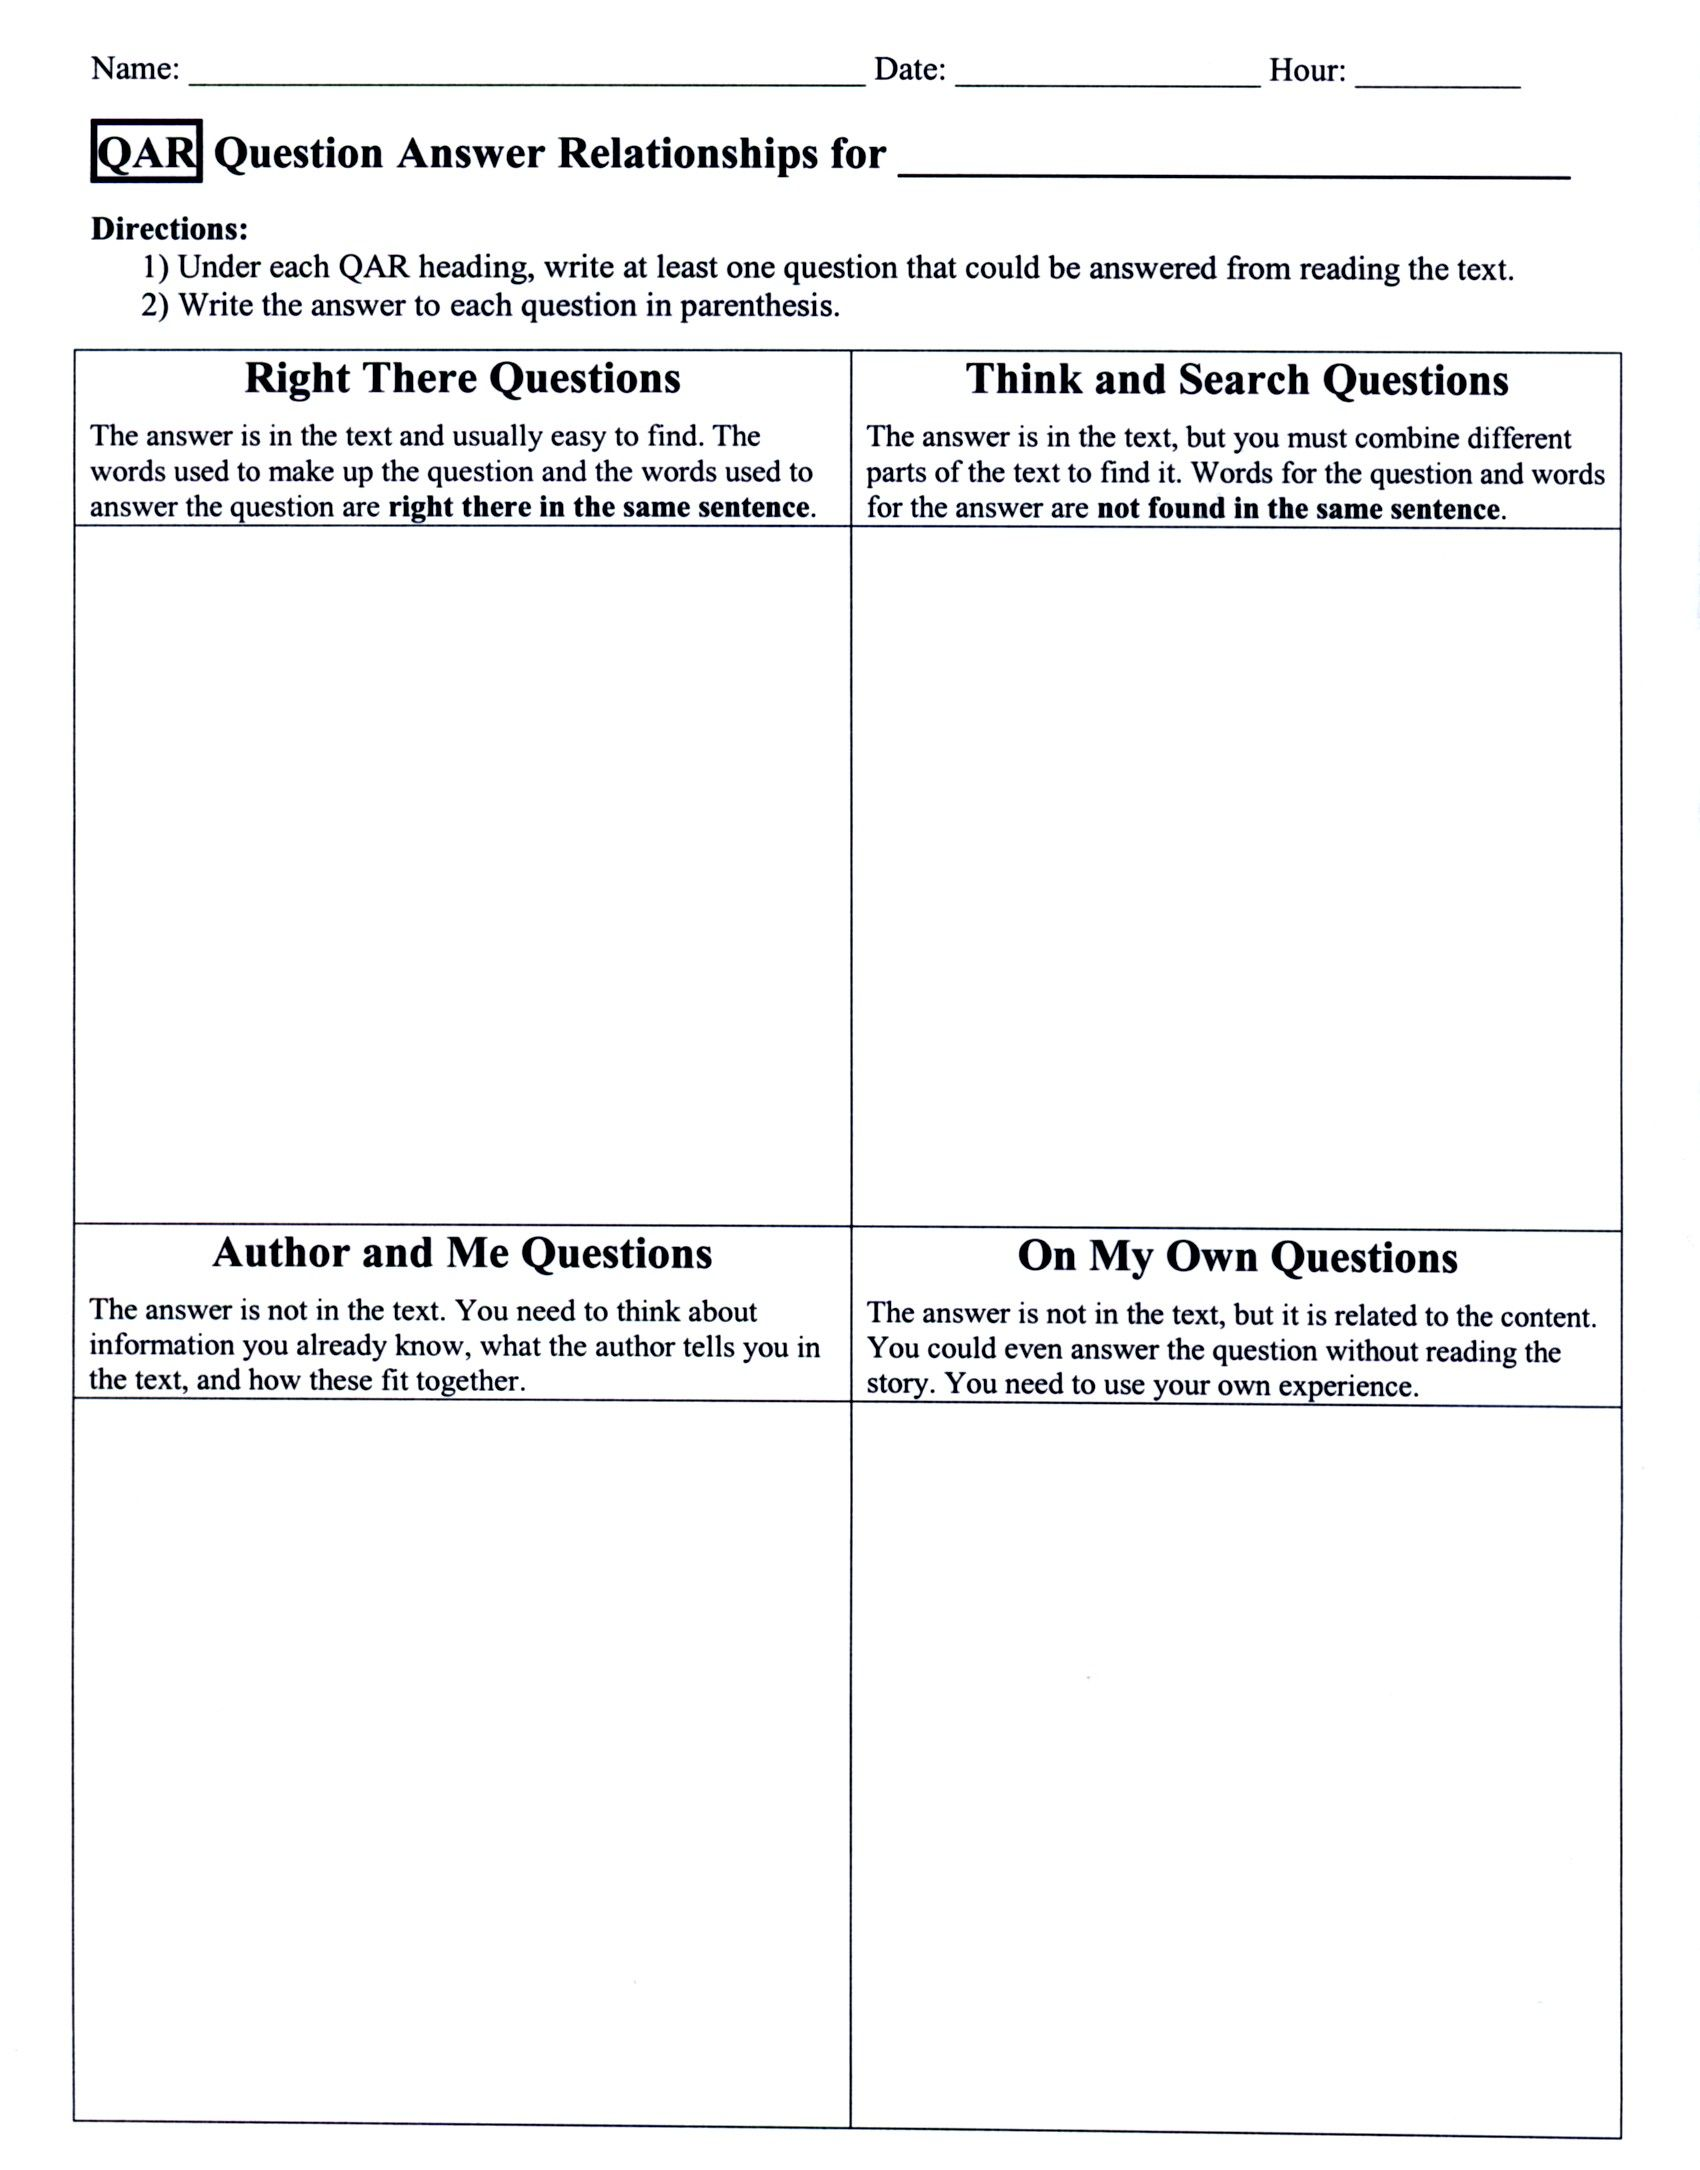 Pin By Amanda Hanie On Teaching Ideas Reading Strategies 6th Grade Reading Active Reading Strategies